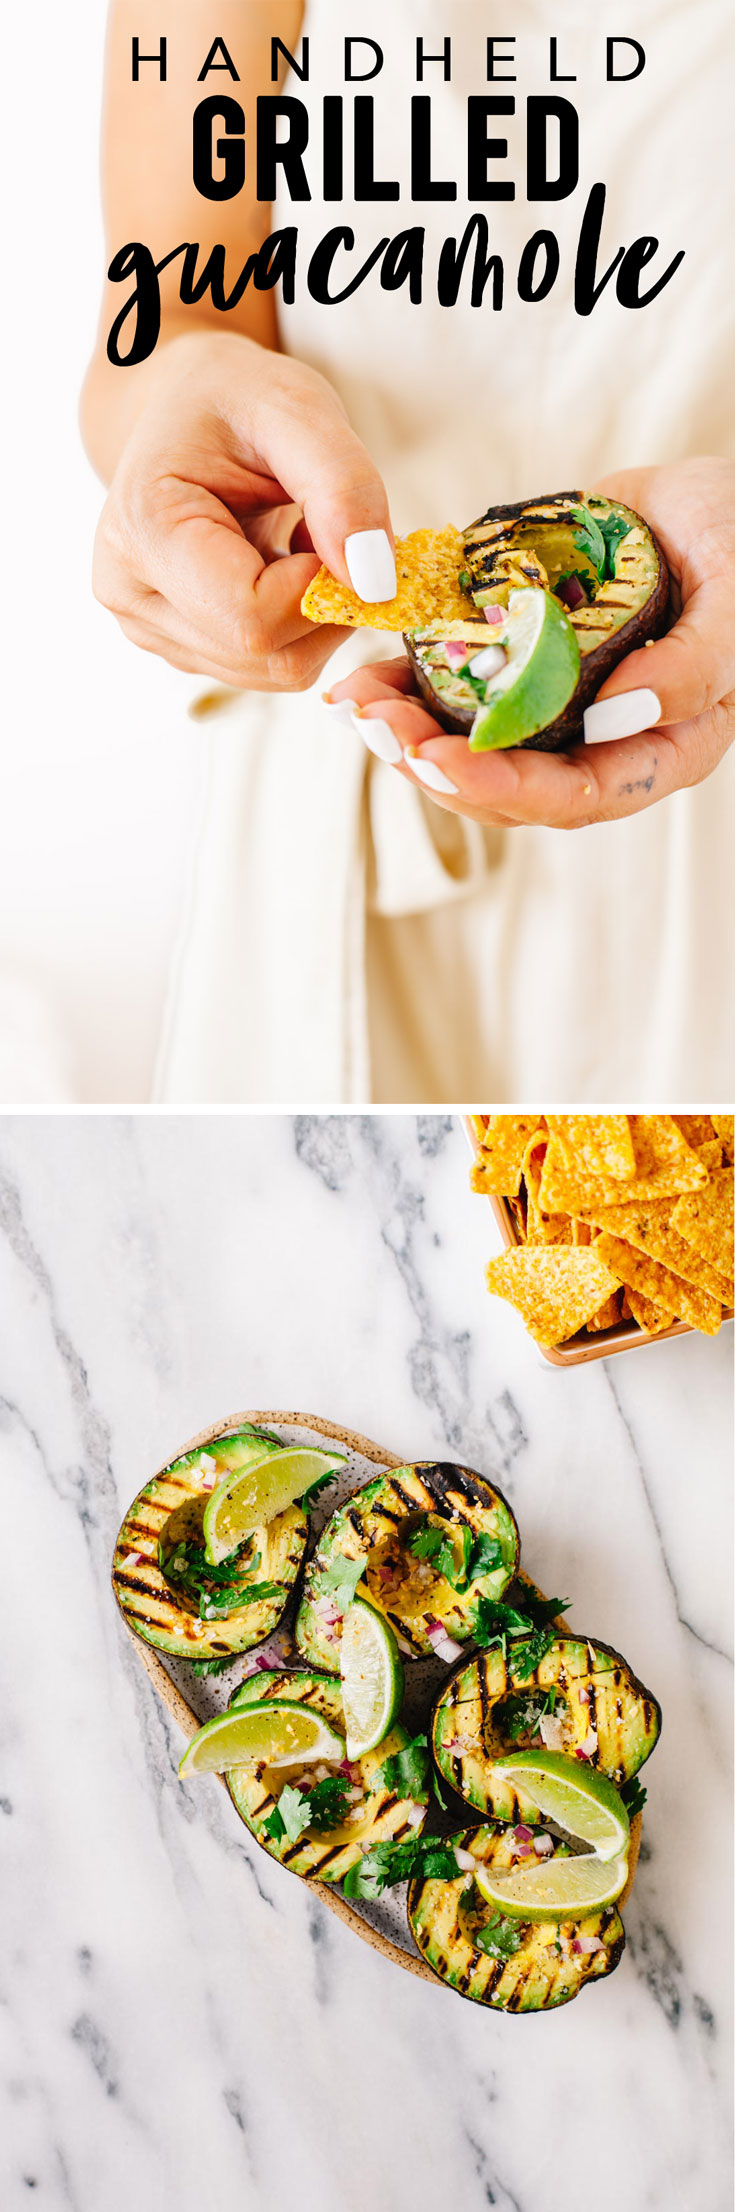 Grill an avocado, top it with red onion, garlic, cilantro, salt, pepper, and lime, and use chips to scoop it into your mouth. BOOM. Handheld guacamole. #guacamole #avocado | Brewing Happiness